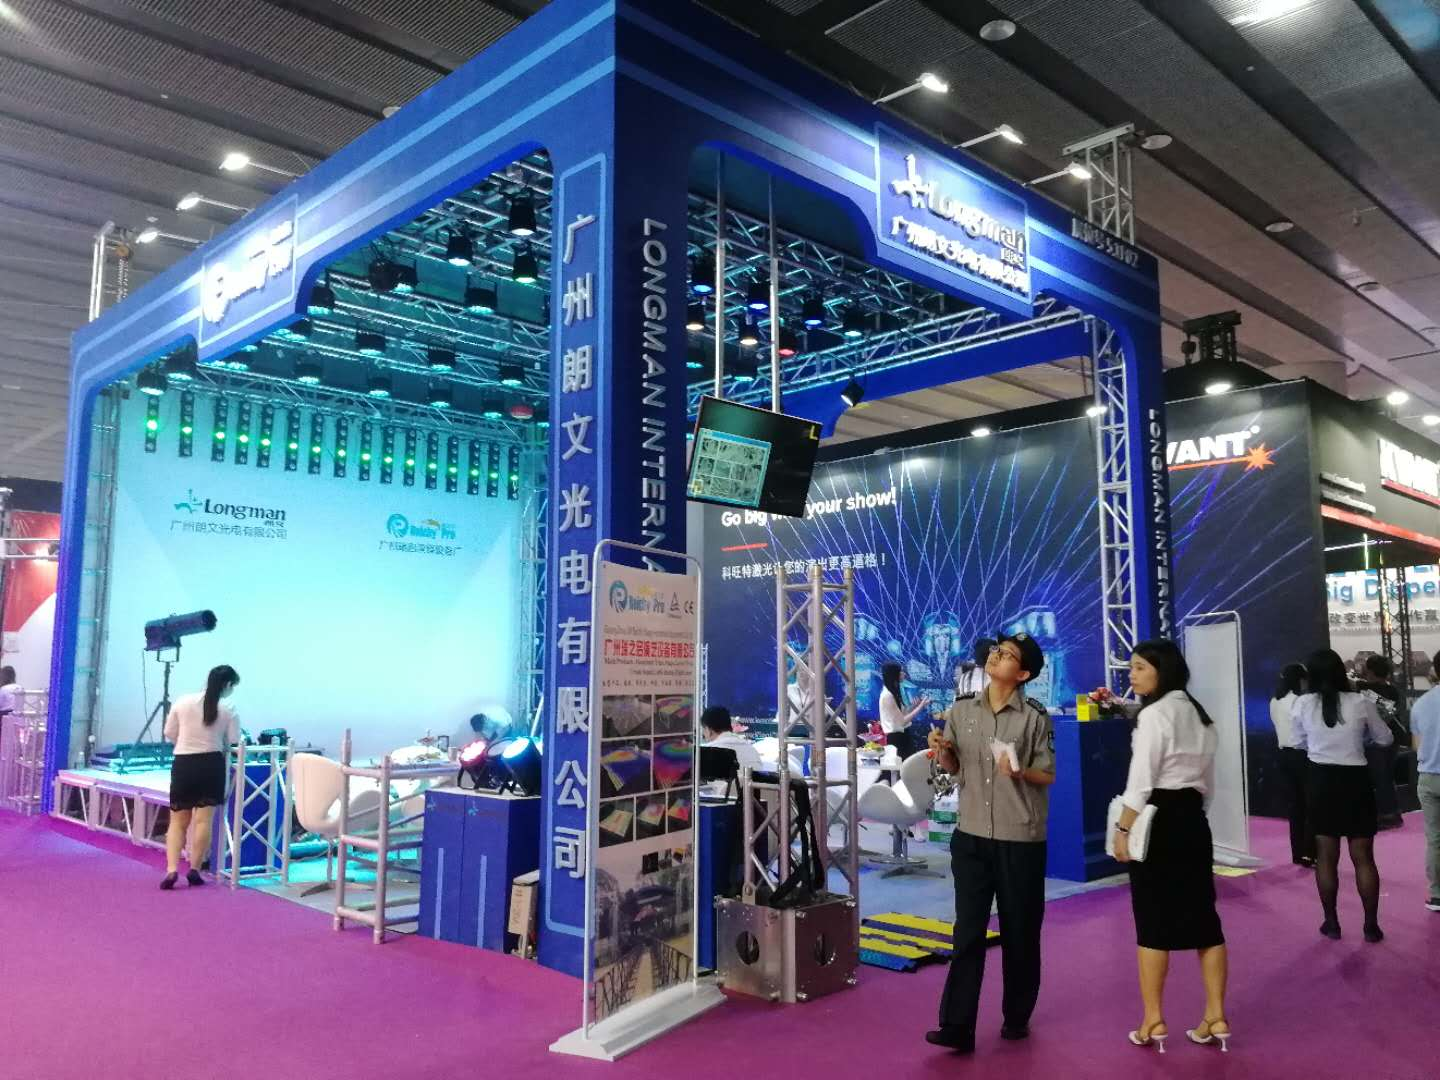 The Guangzhou International Prolight+Sound Exhibition started